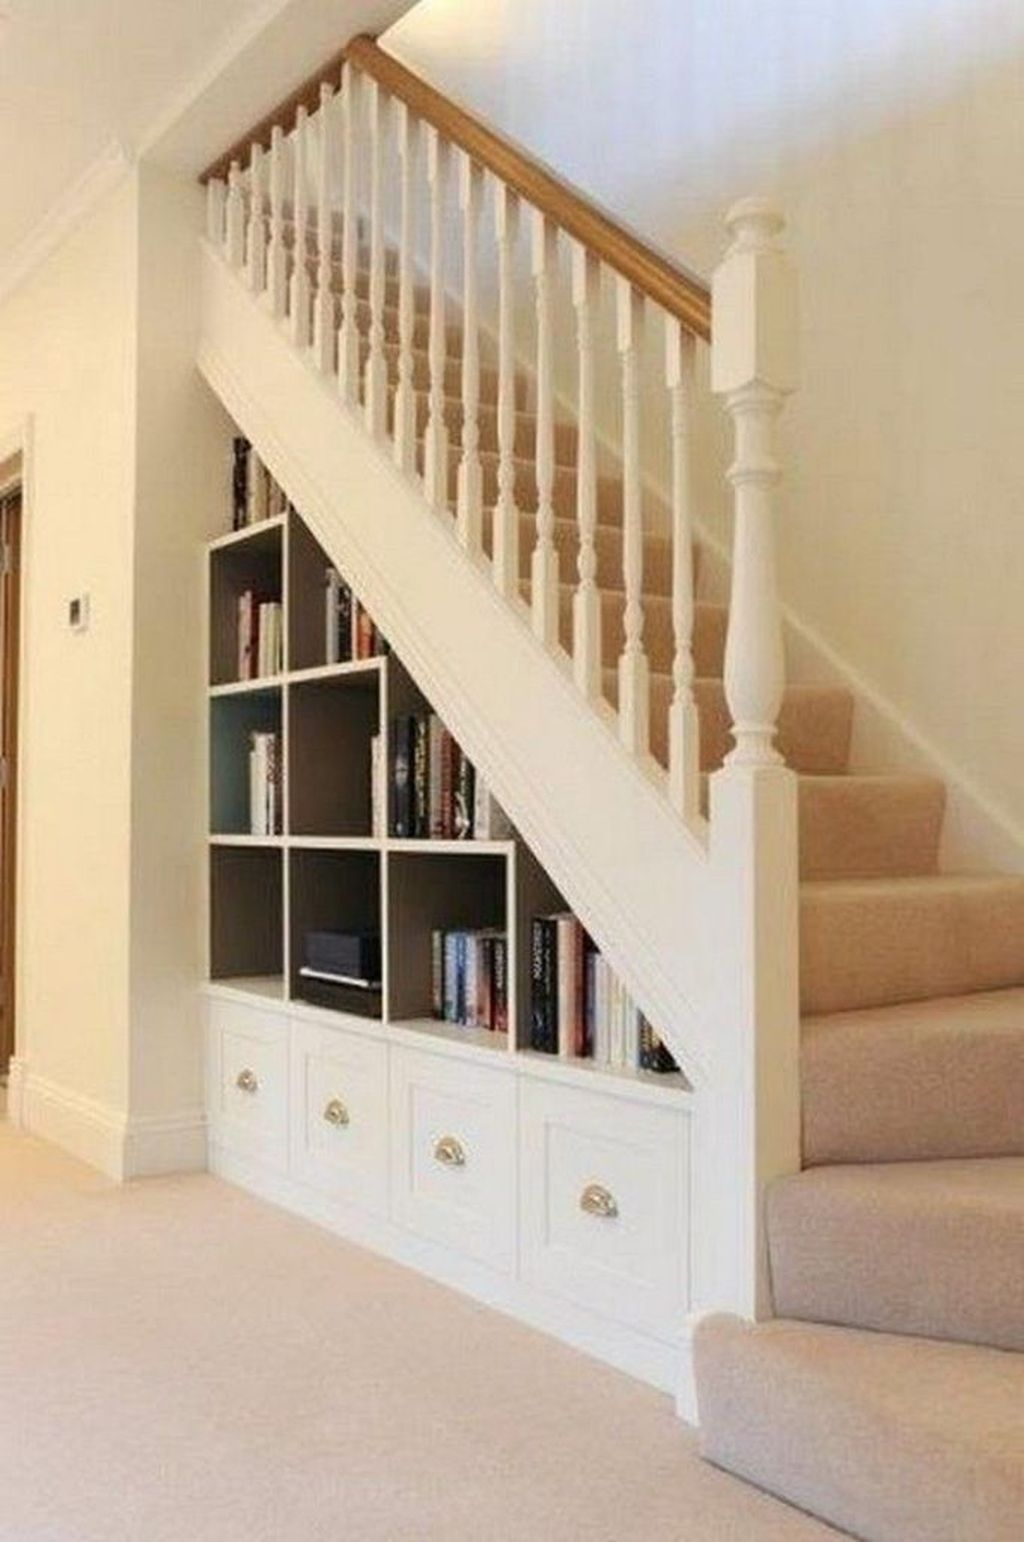 20+ Brilliant Storage Ideas For Under Stairs That Will